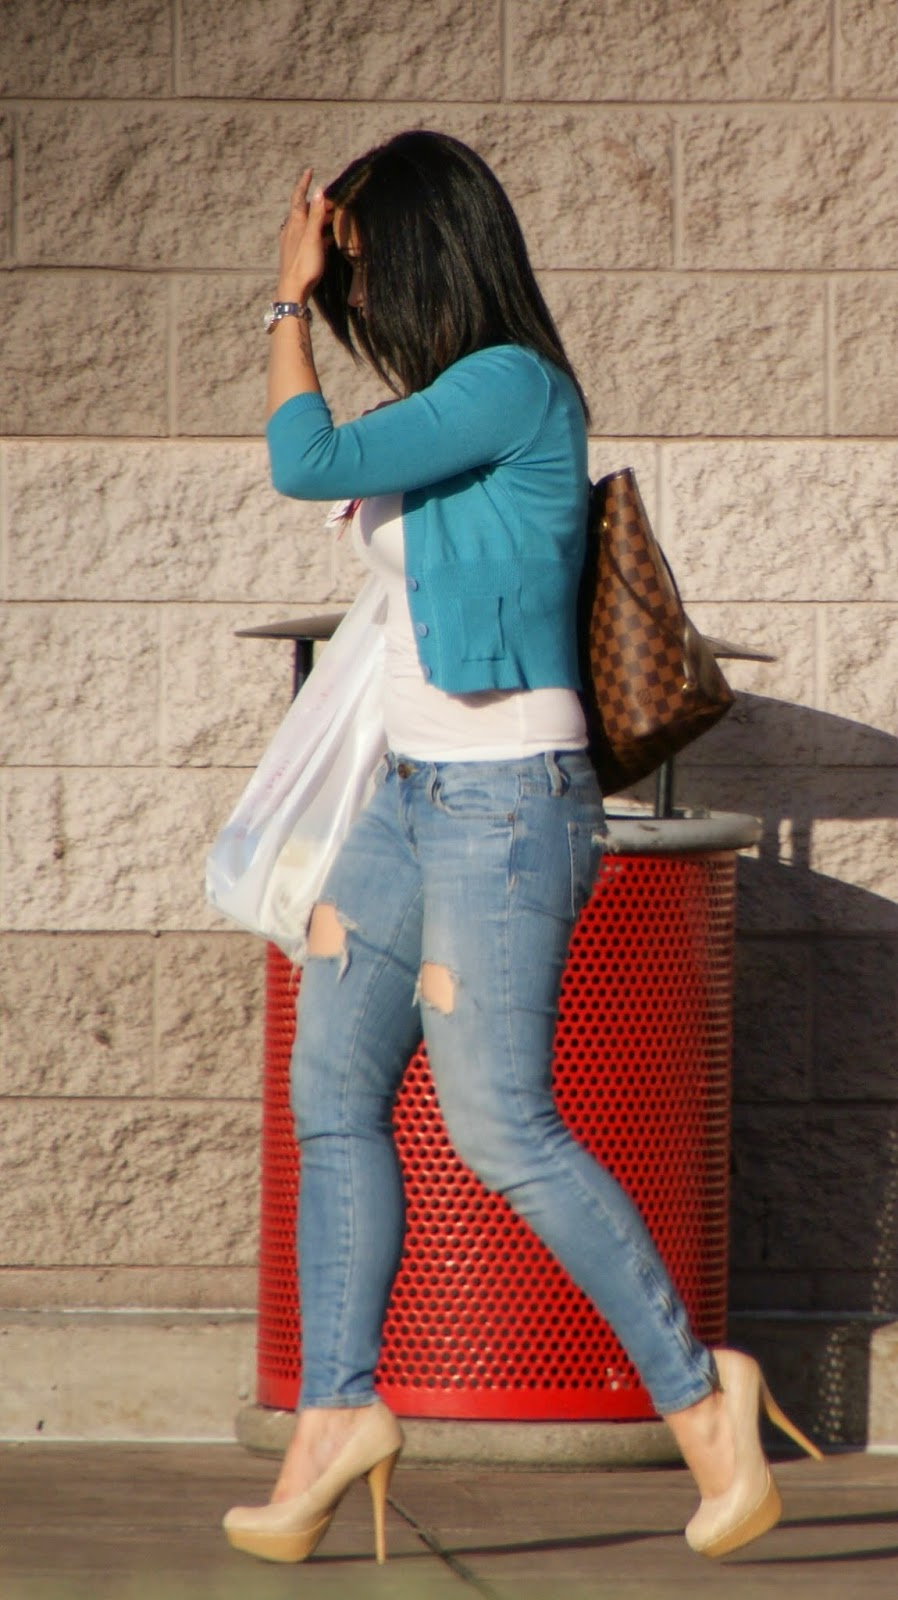 Sexy Girls On The Street, Girls In Jeans, Spandex And -8613